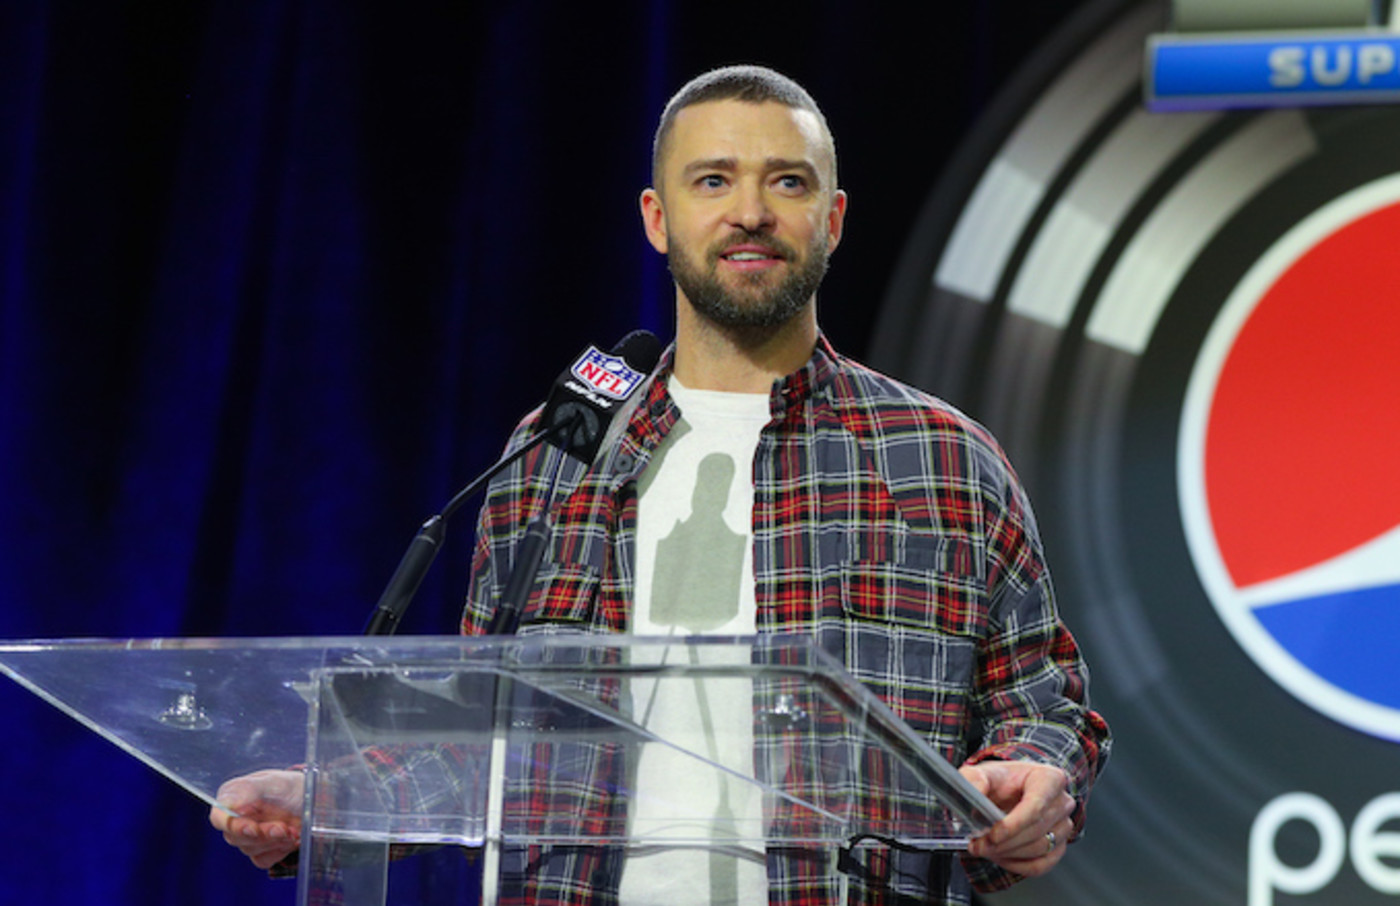 Justin Timberlak at a SuperBowl LII Pepsi Halftime Show Press Conference.